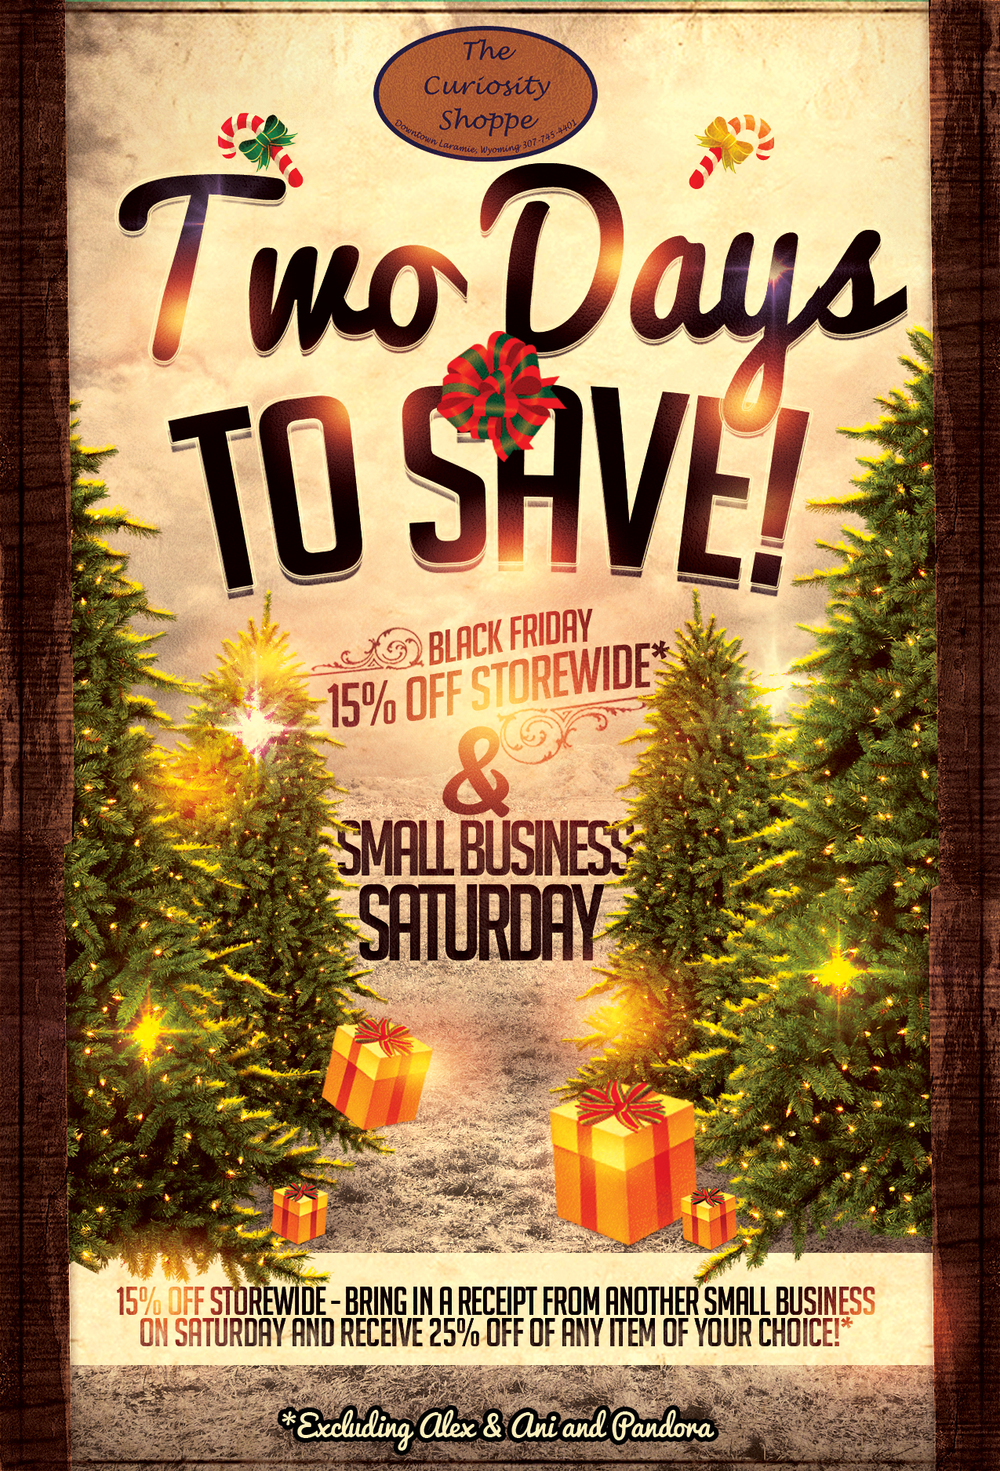 Curiosity Shoppe Two Days To Save Poster